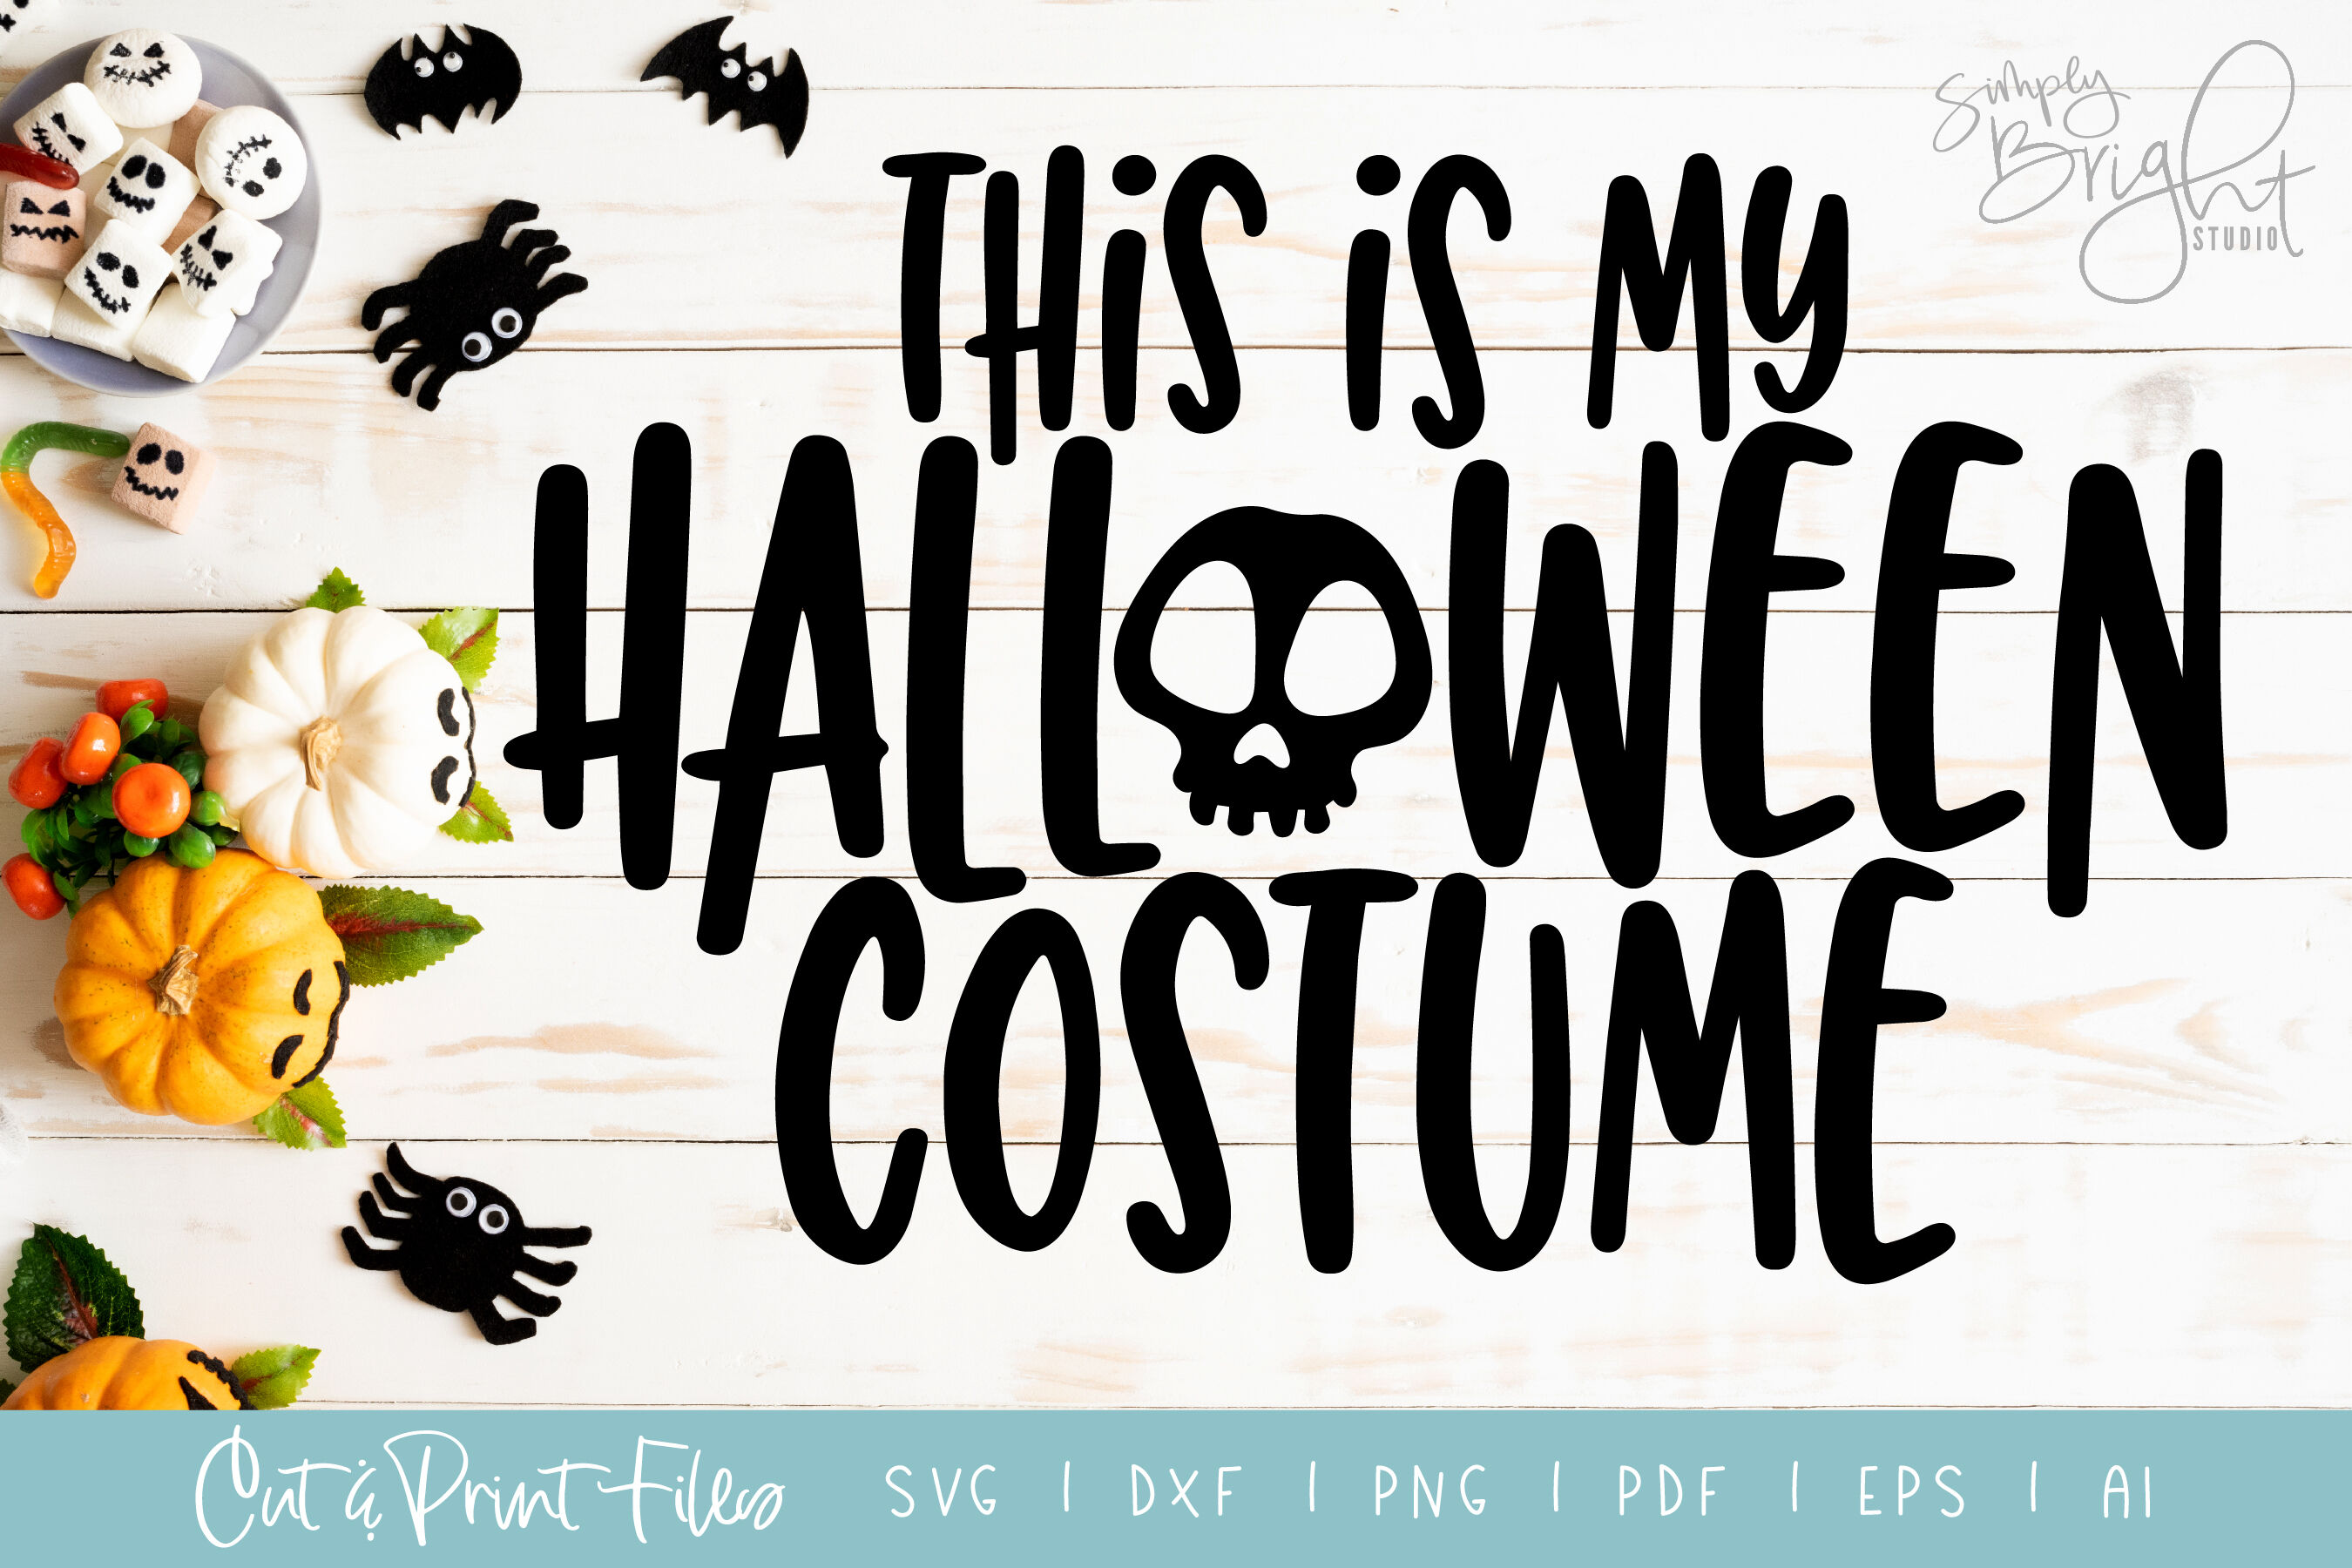 Halloween Costume Dxf Svg Png Pdf Cut Print Files By Simply